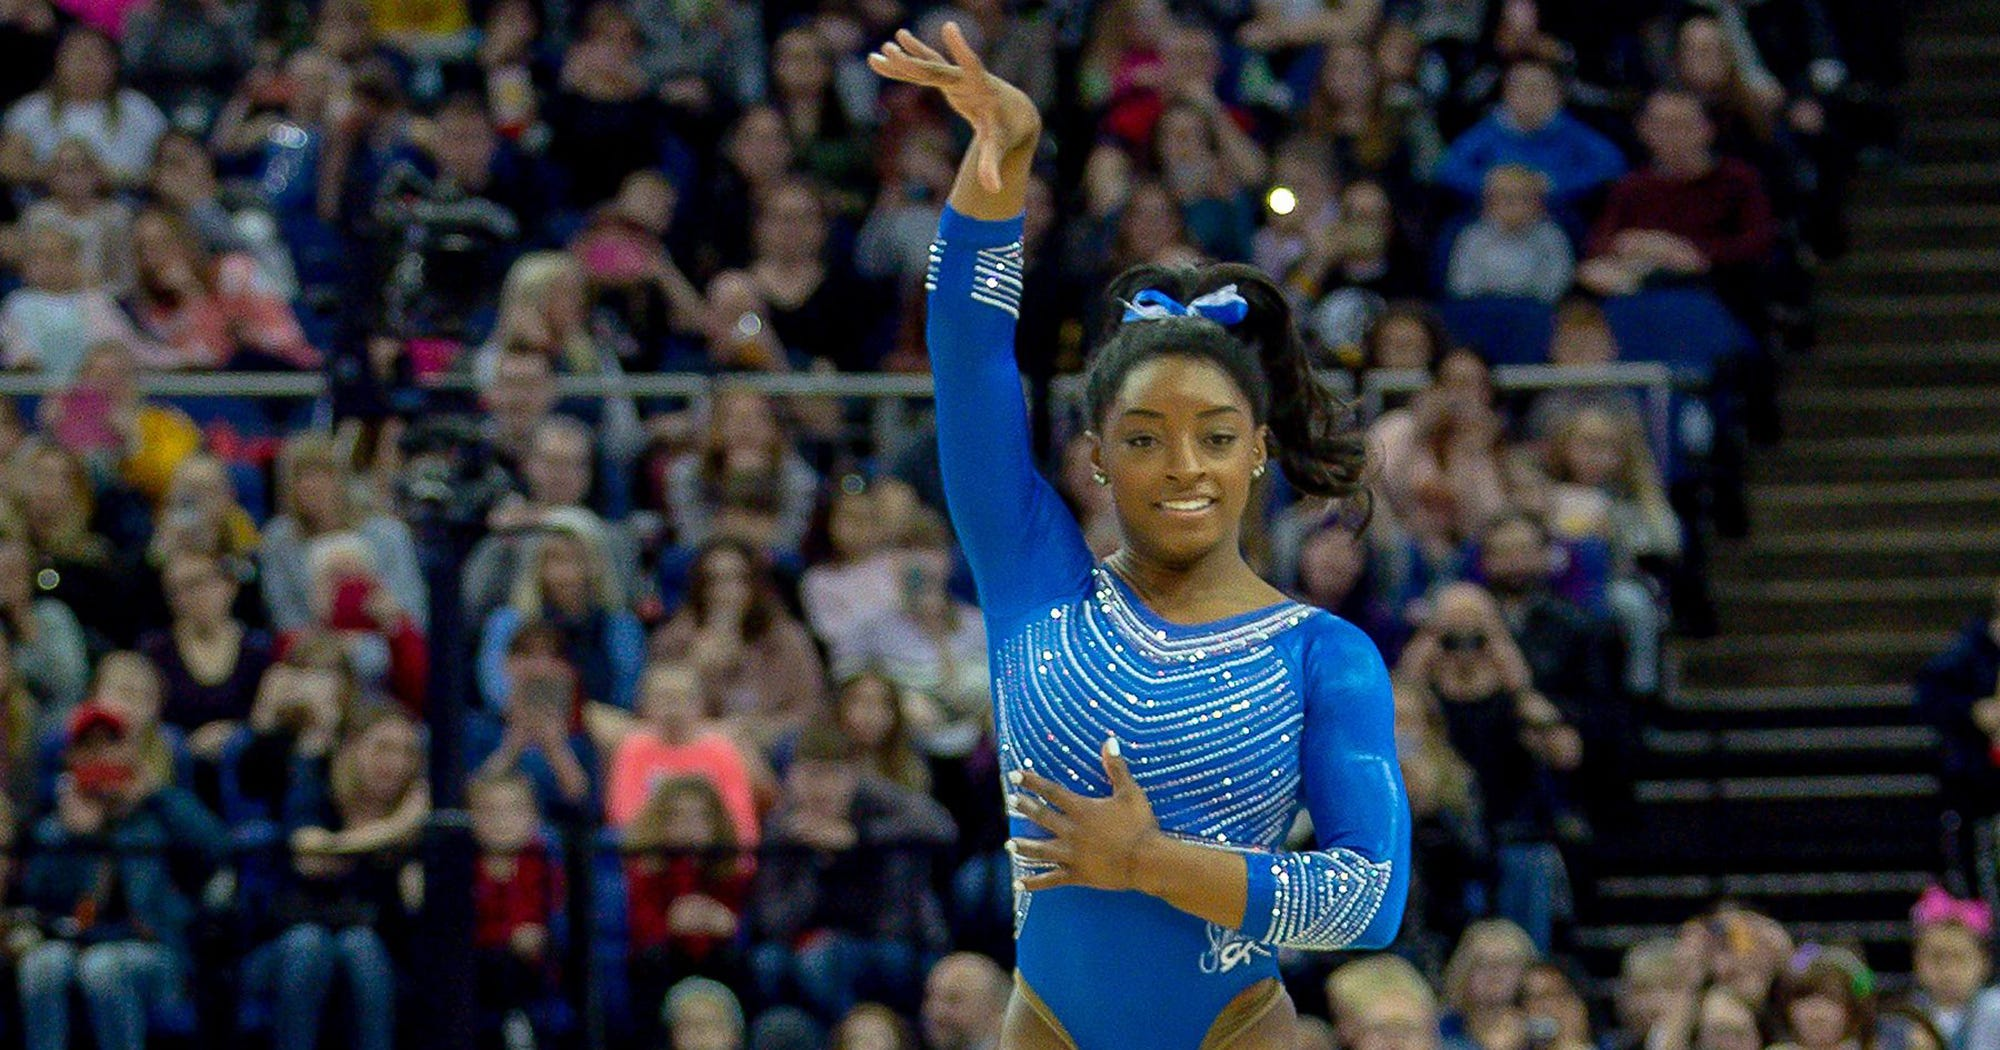 Simone Biles Is The GOAT After Landing A Move No One Has Ever Done